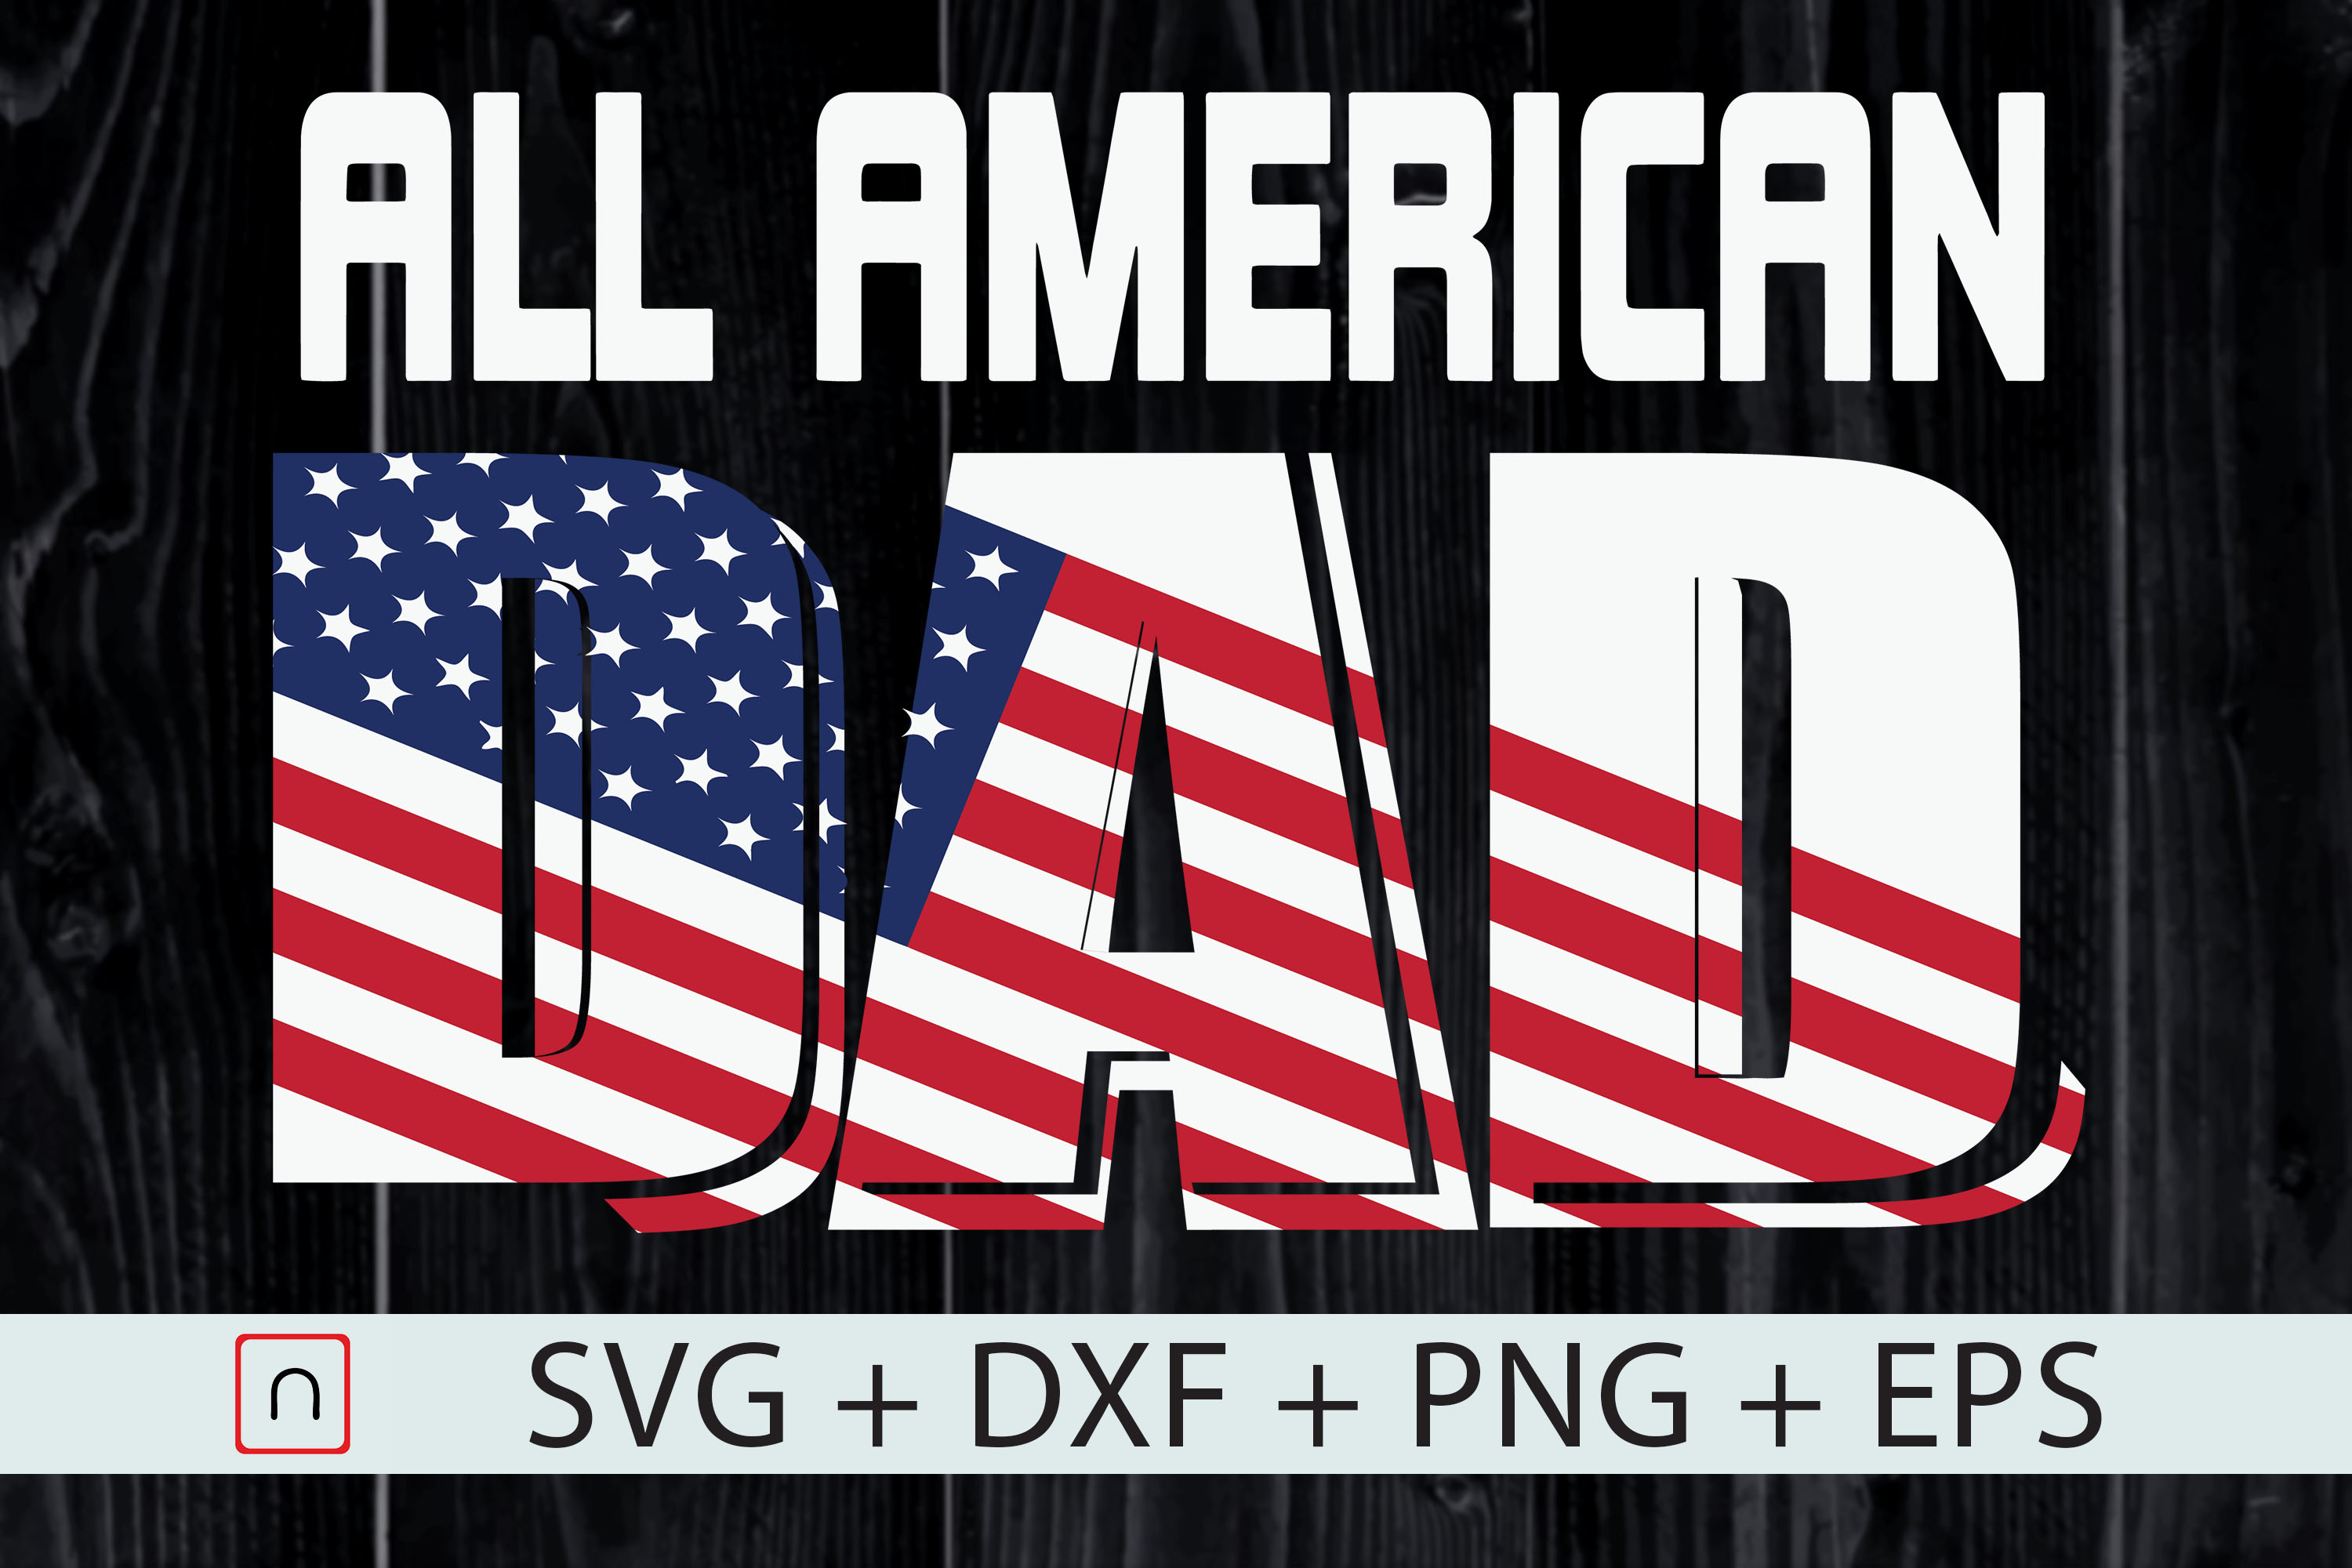 Download Free All American Dad Father S Day Gift Graphic By Novalia Creative for Cricut Explore, Silhouette and other cutting machines.